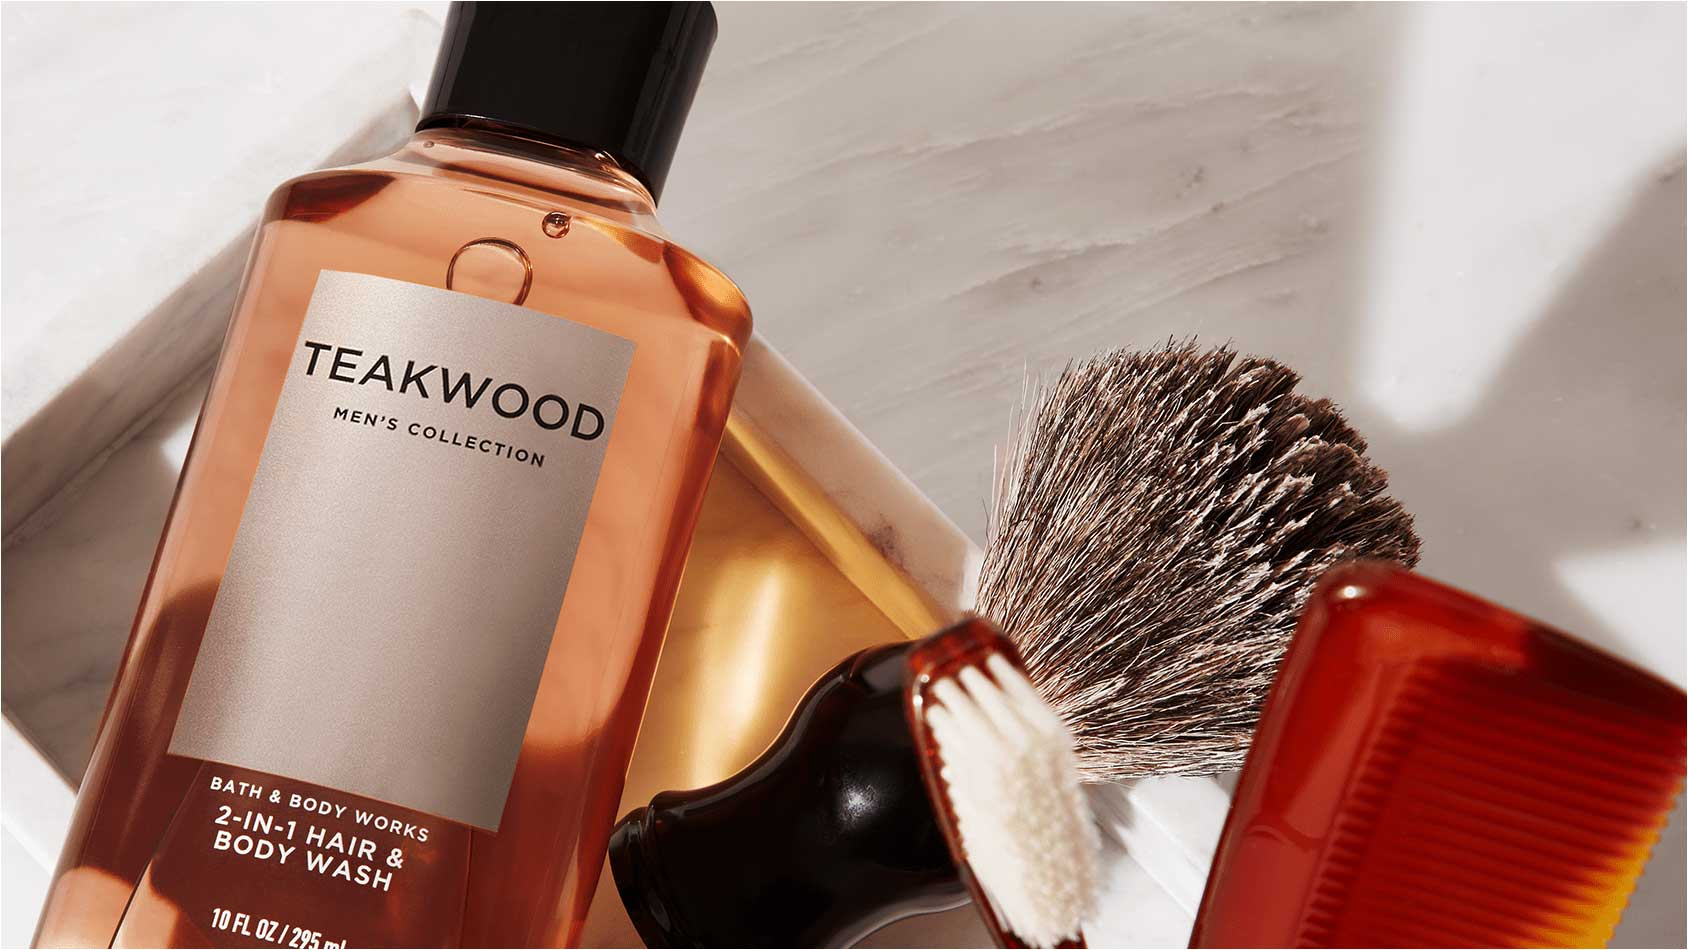 Gifts for dad – men's body wash